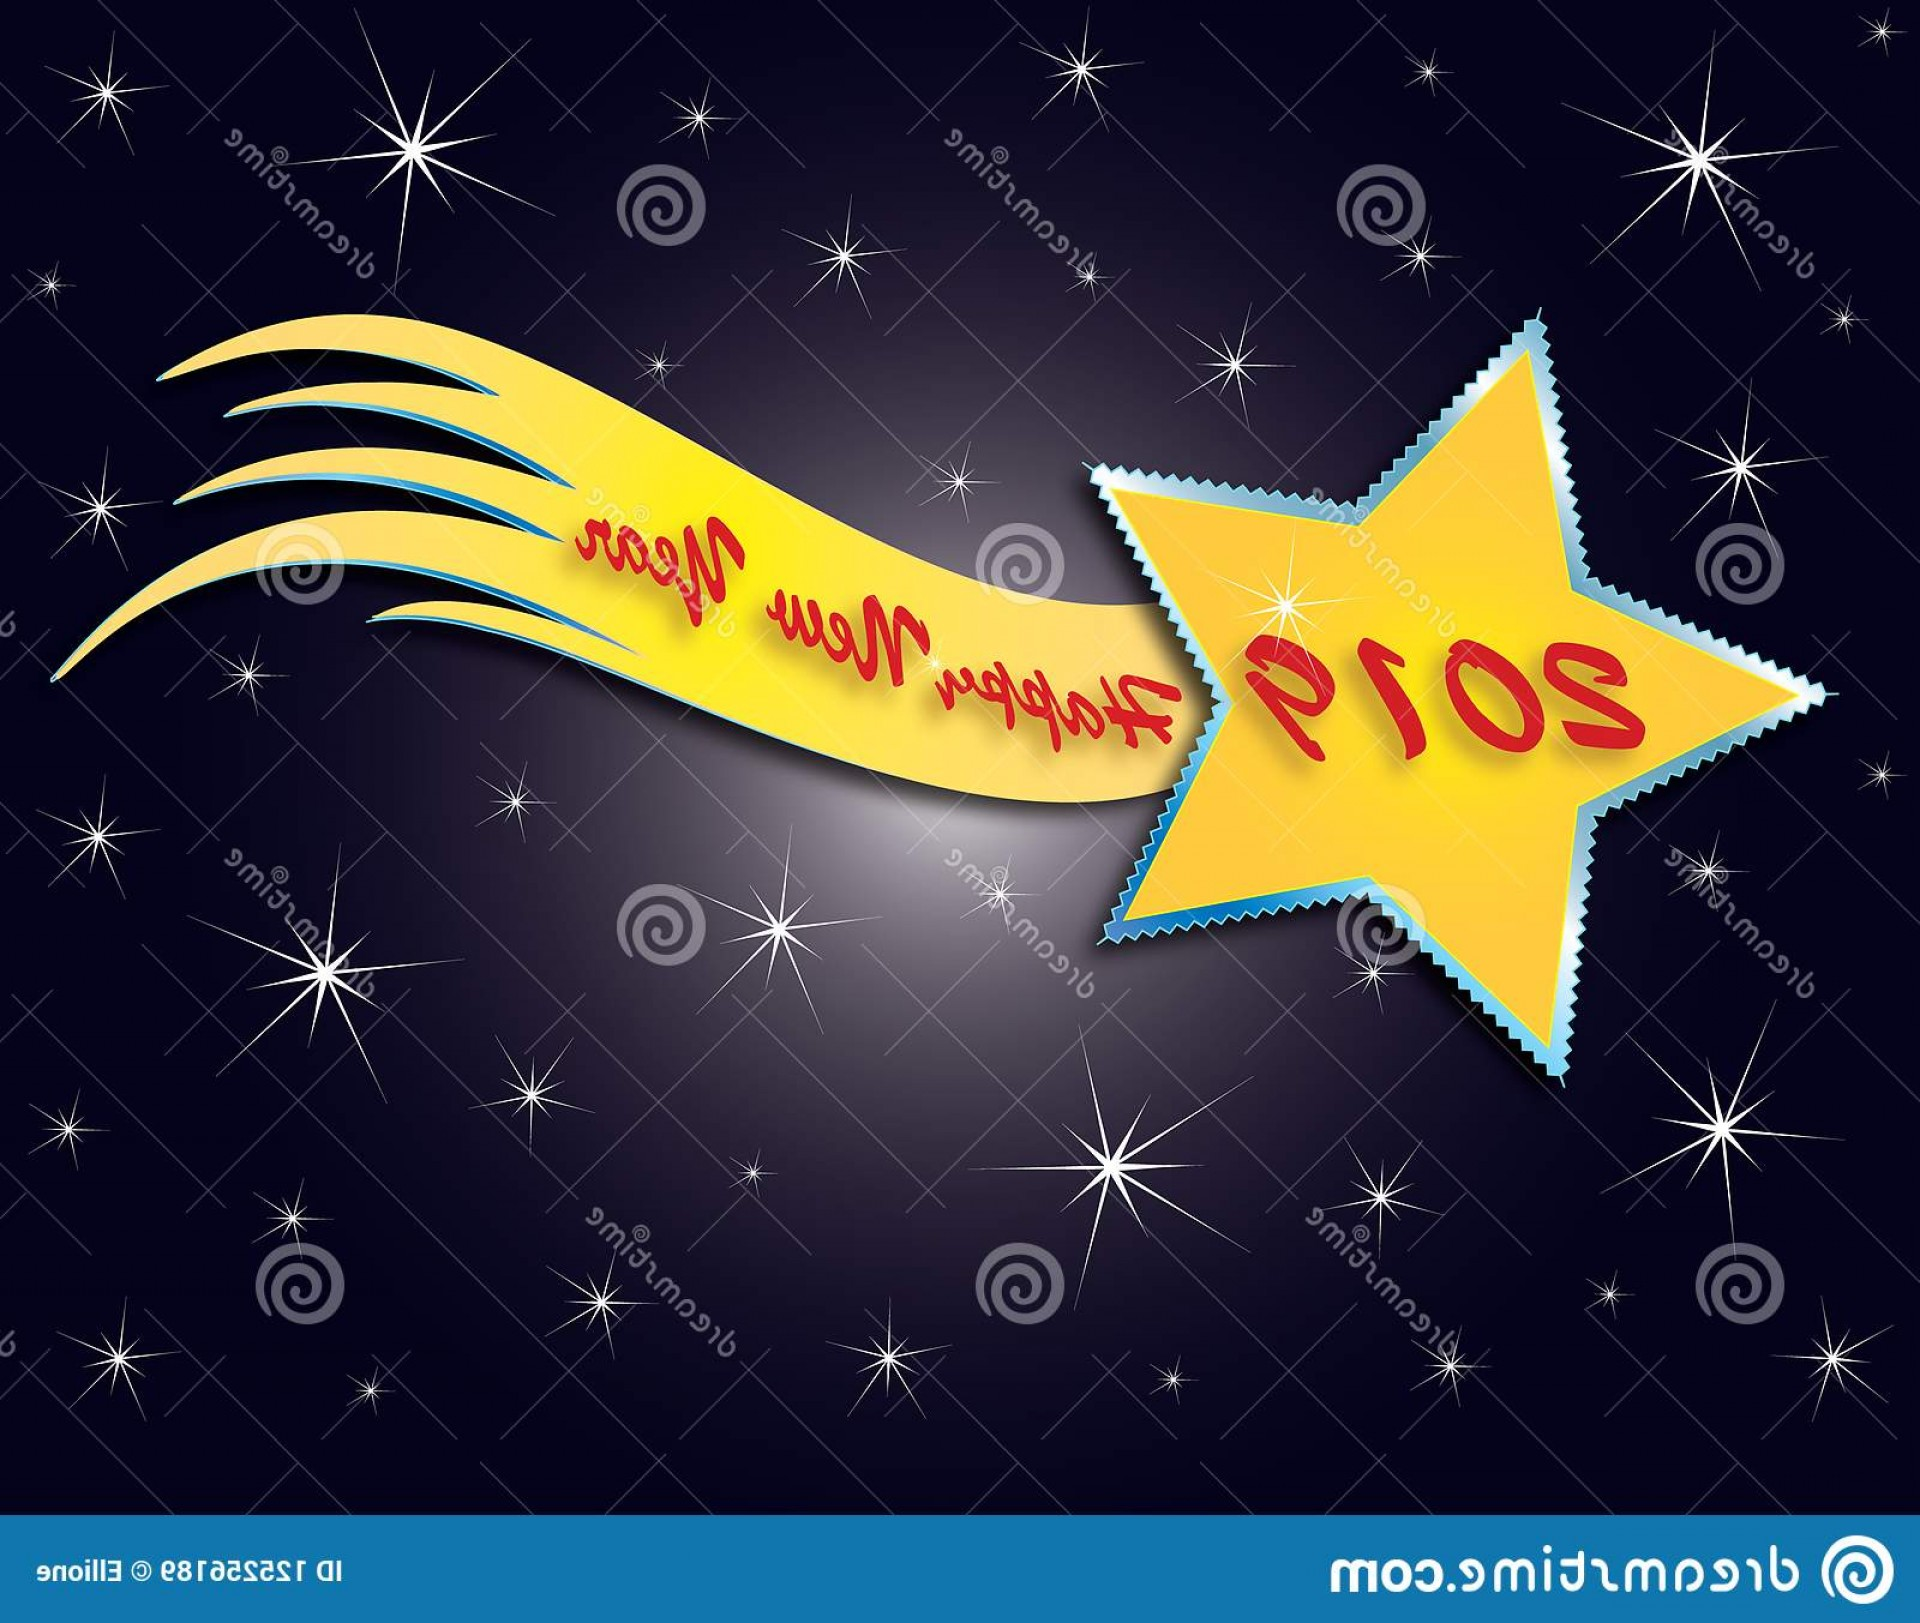 Stars Yellow Christmas Vector: Yellow Christmas Comet Night Sky Stars Background Happy New Years Vector Format Image